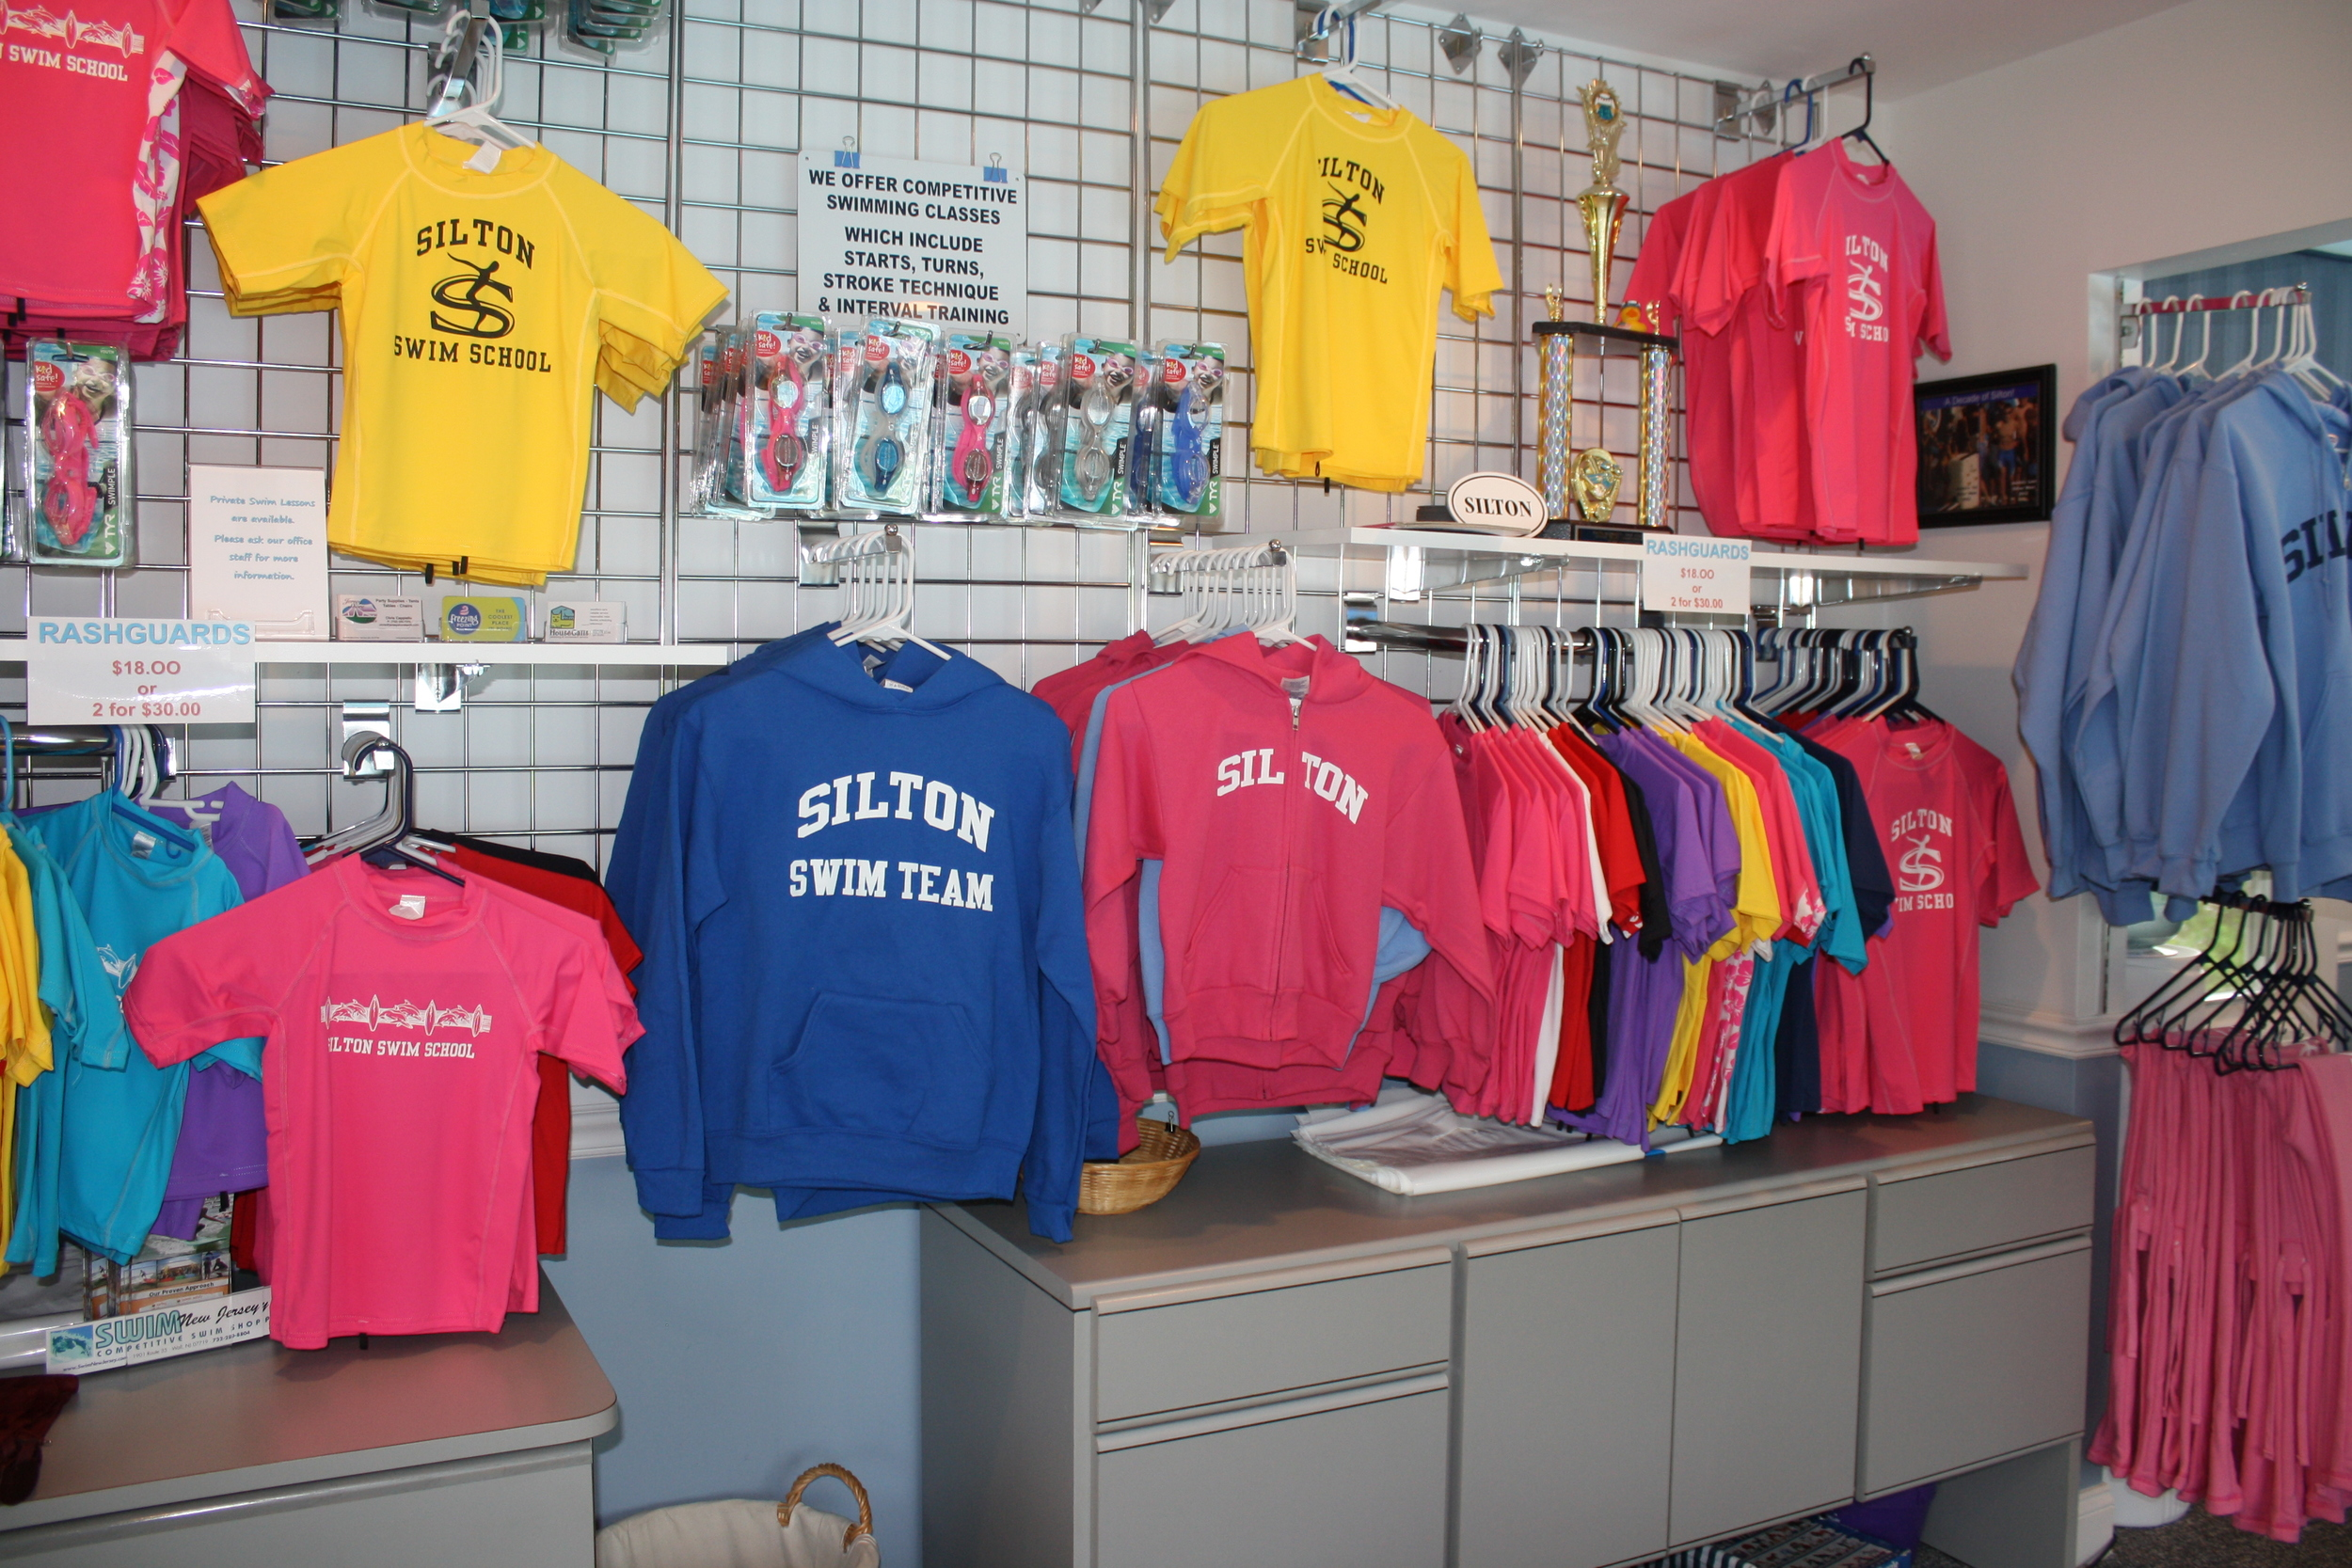 Please check back in the spring as we will have photos and prices of each item for sale in our pool office.